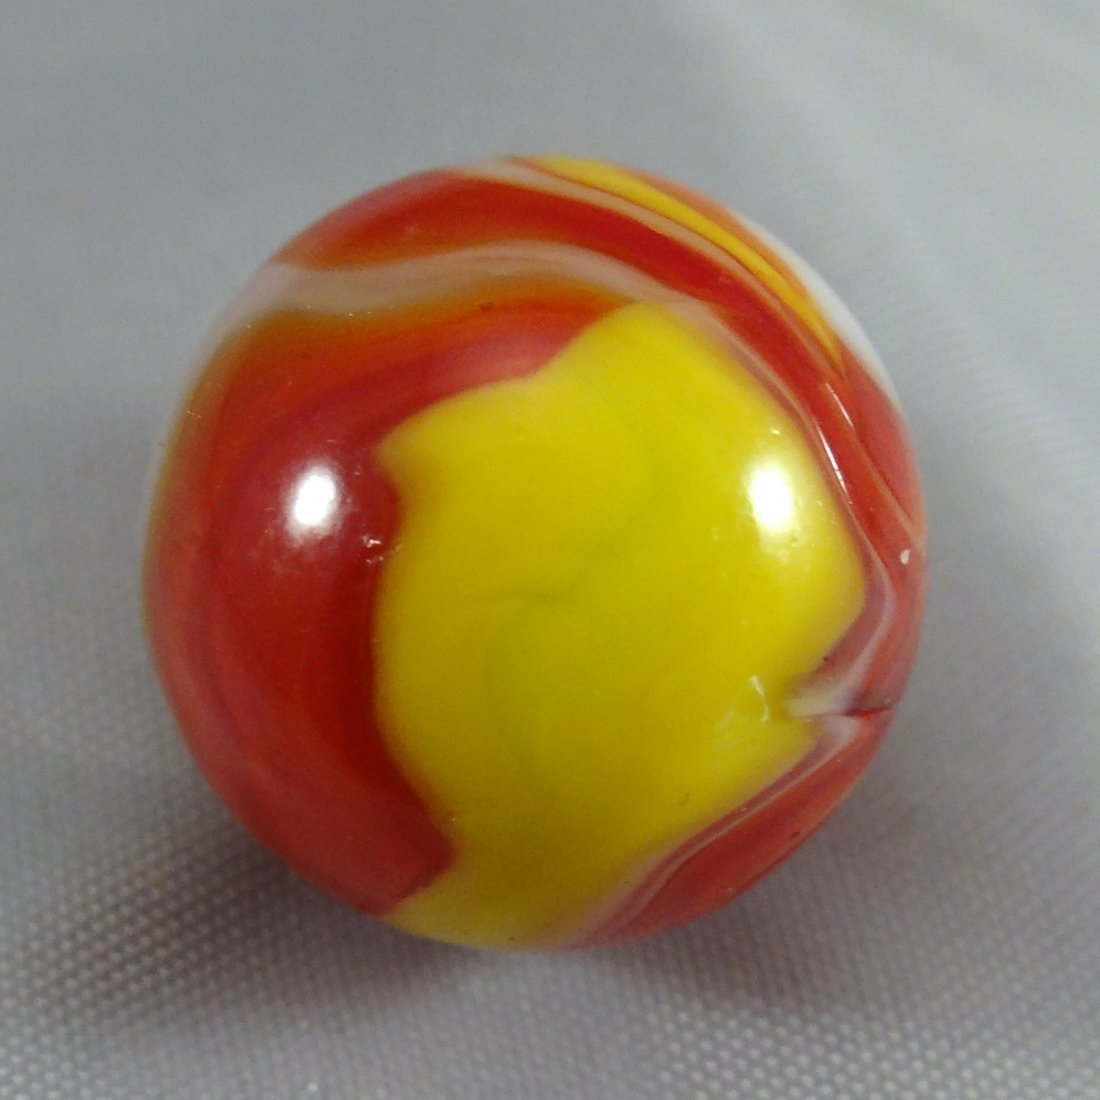 "Lot 41. Peltier Glass. Ketchup and Mustard. 5/8"". M 9.9 - 4"